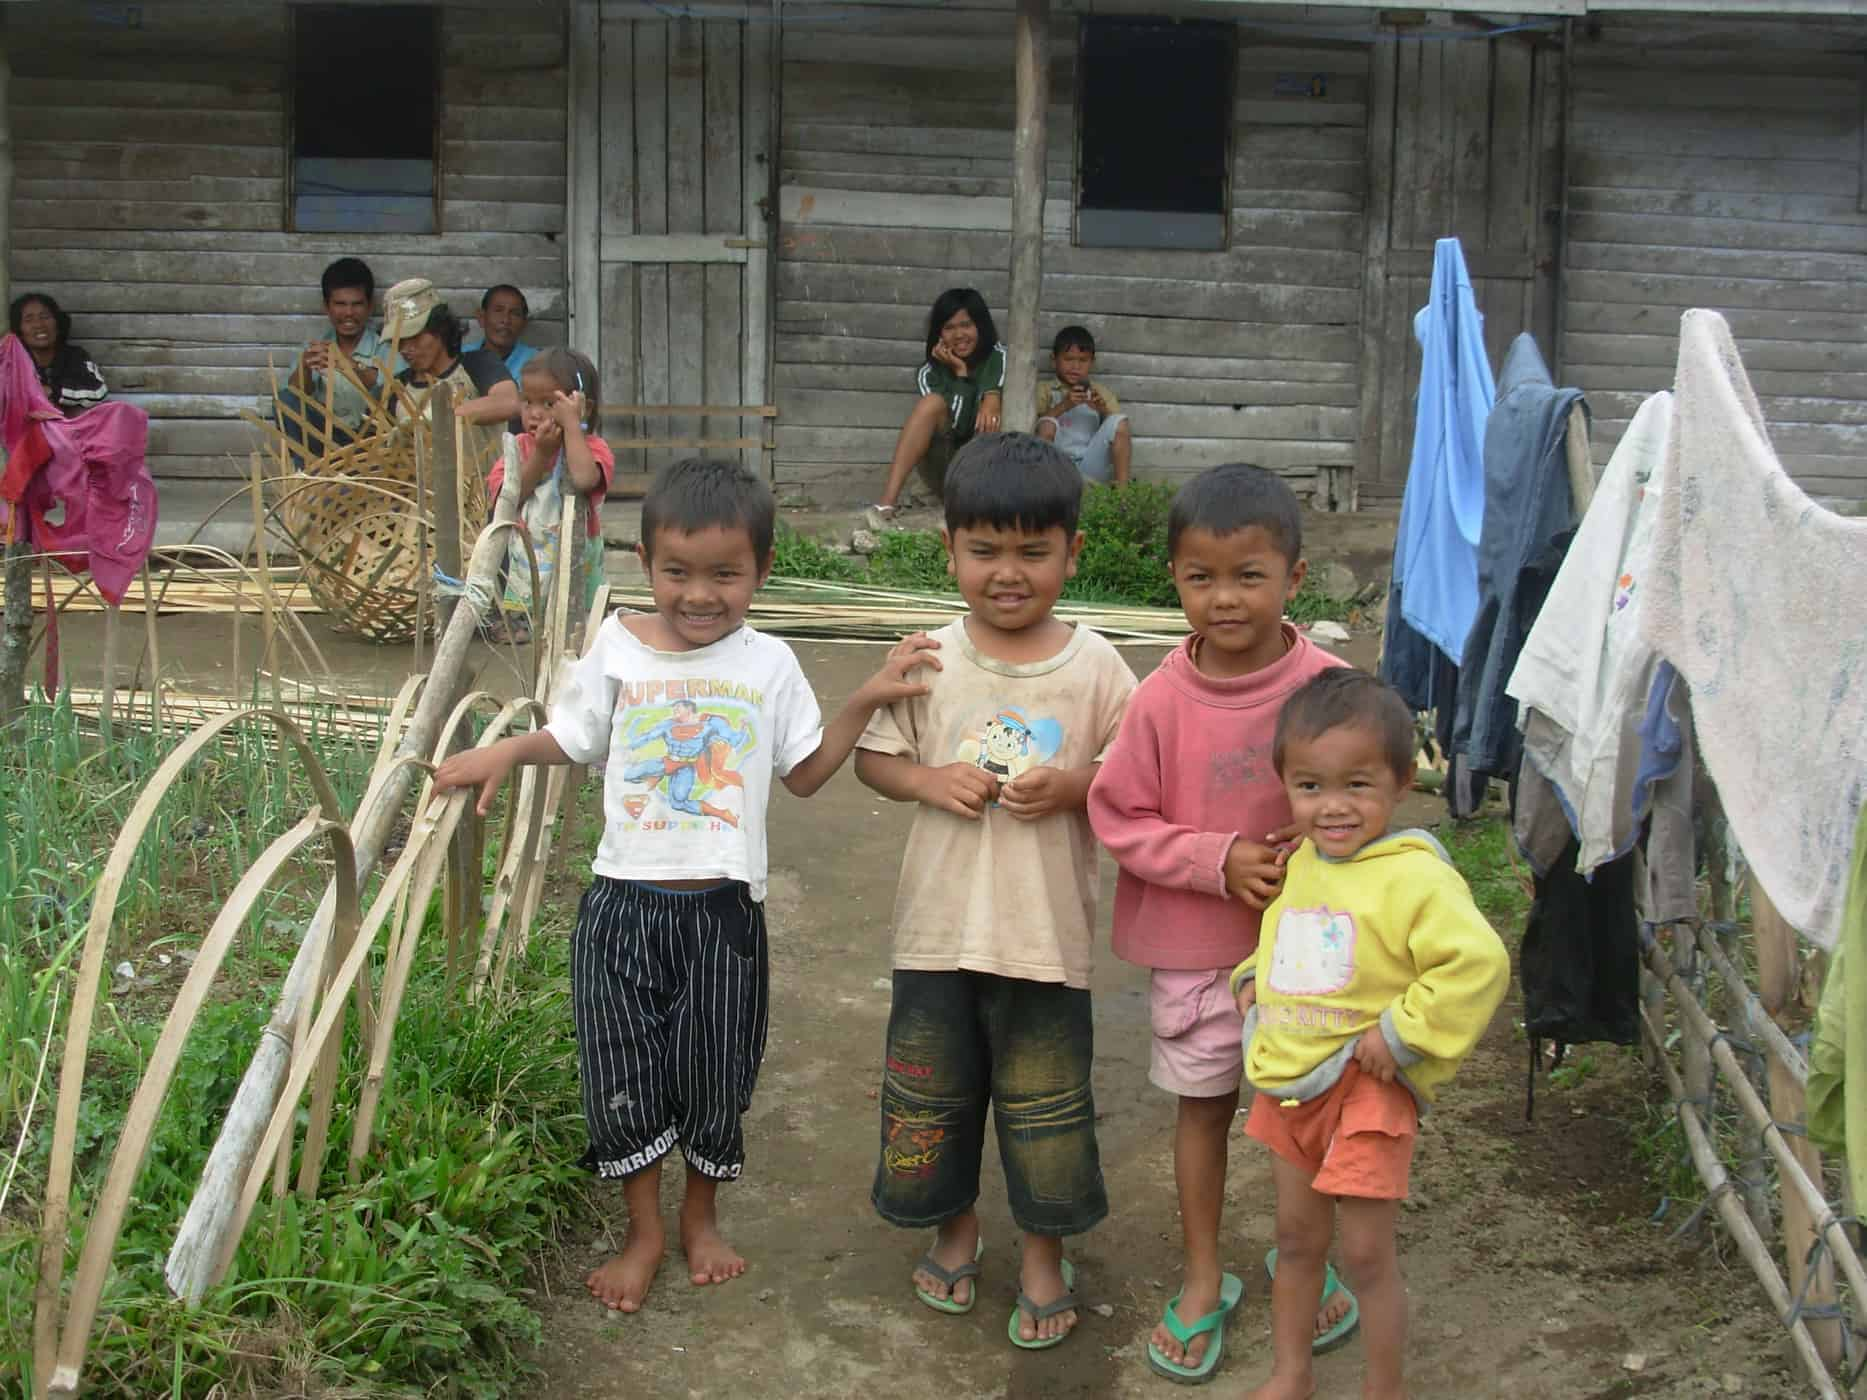 Local kids in Berestagi, Sumatra.